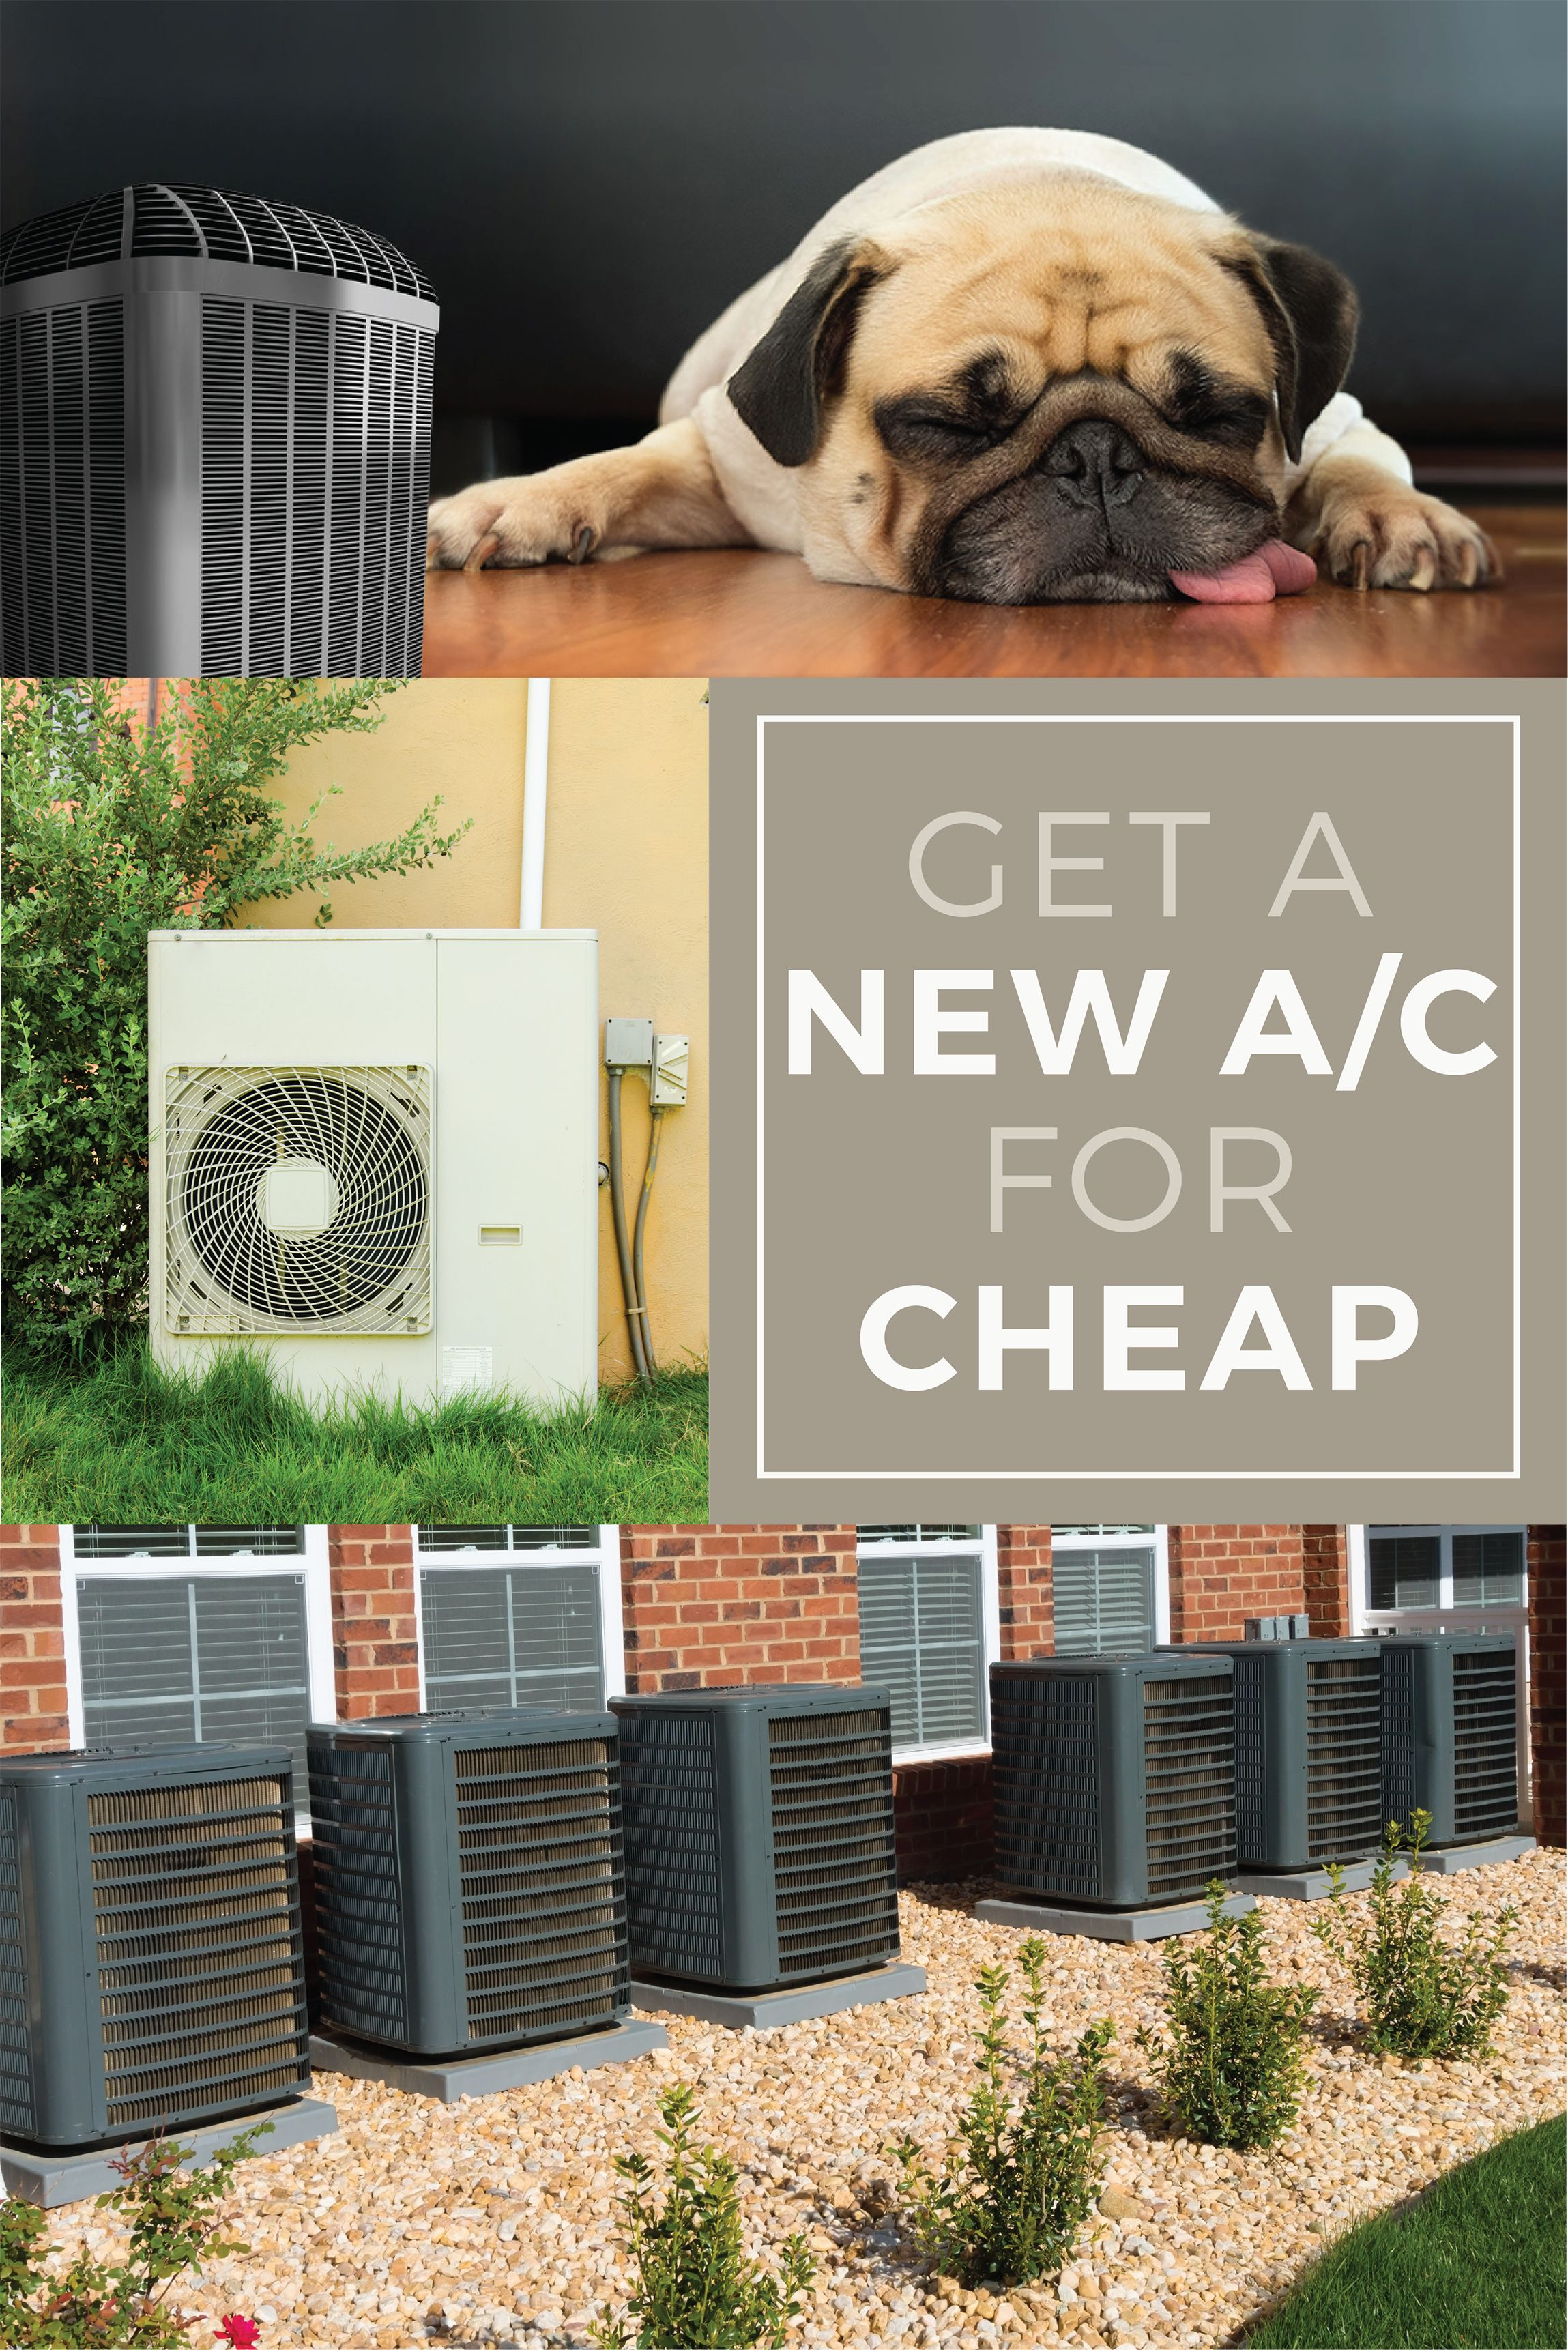 Homeowners Rush to Get Cheaper Air Conditioners Cheap